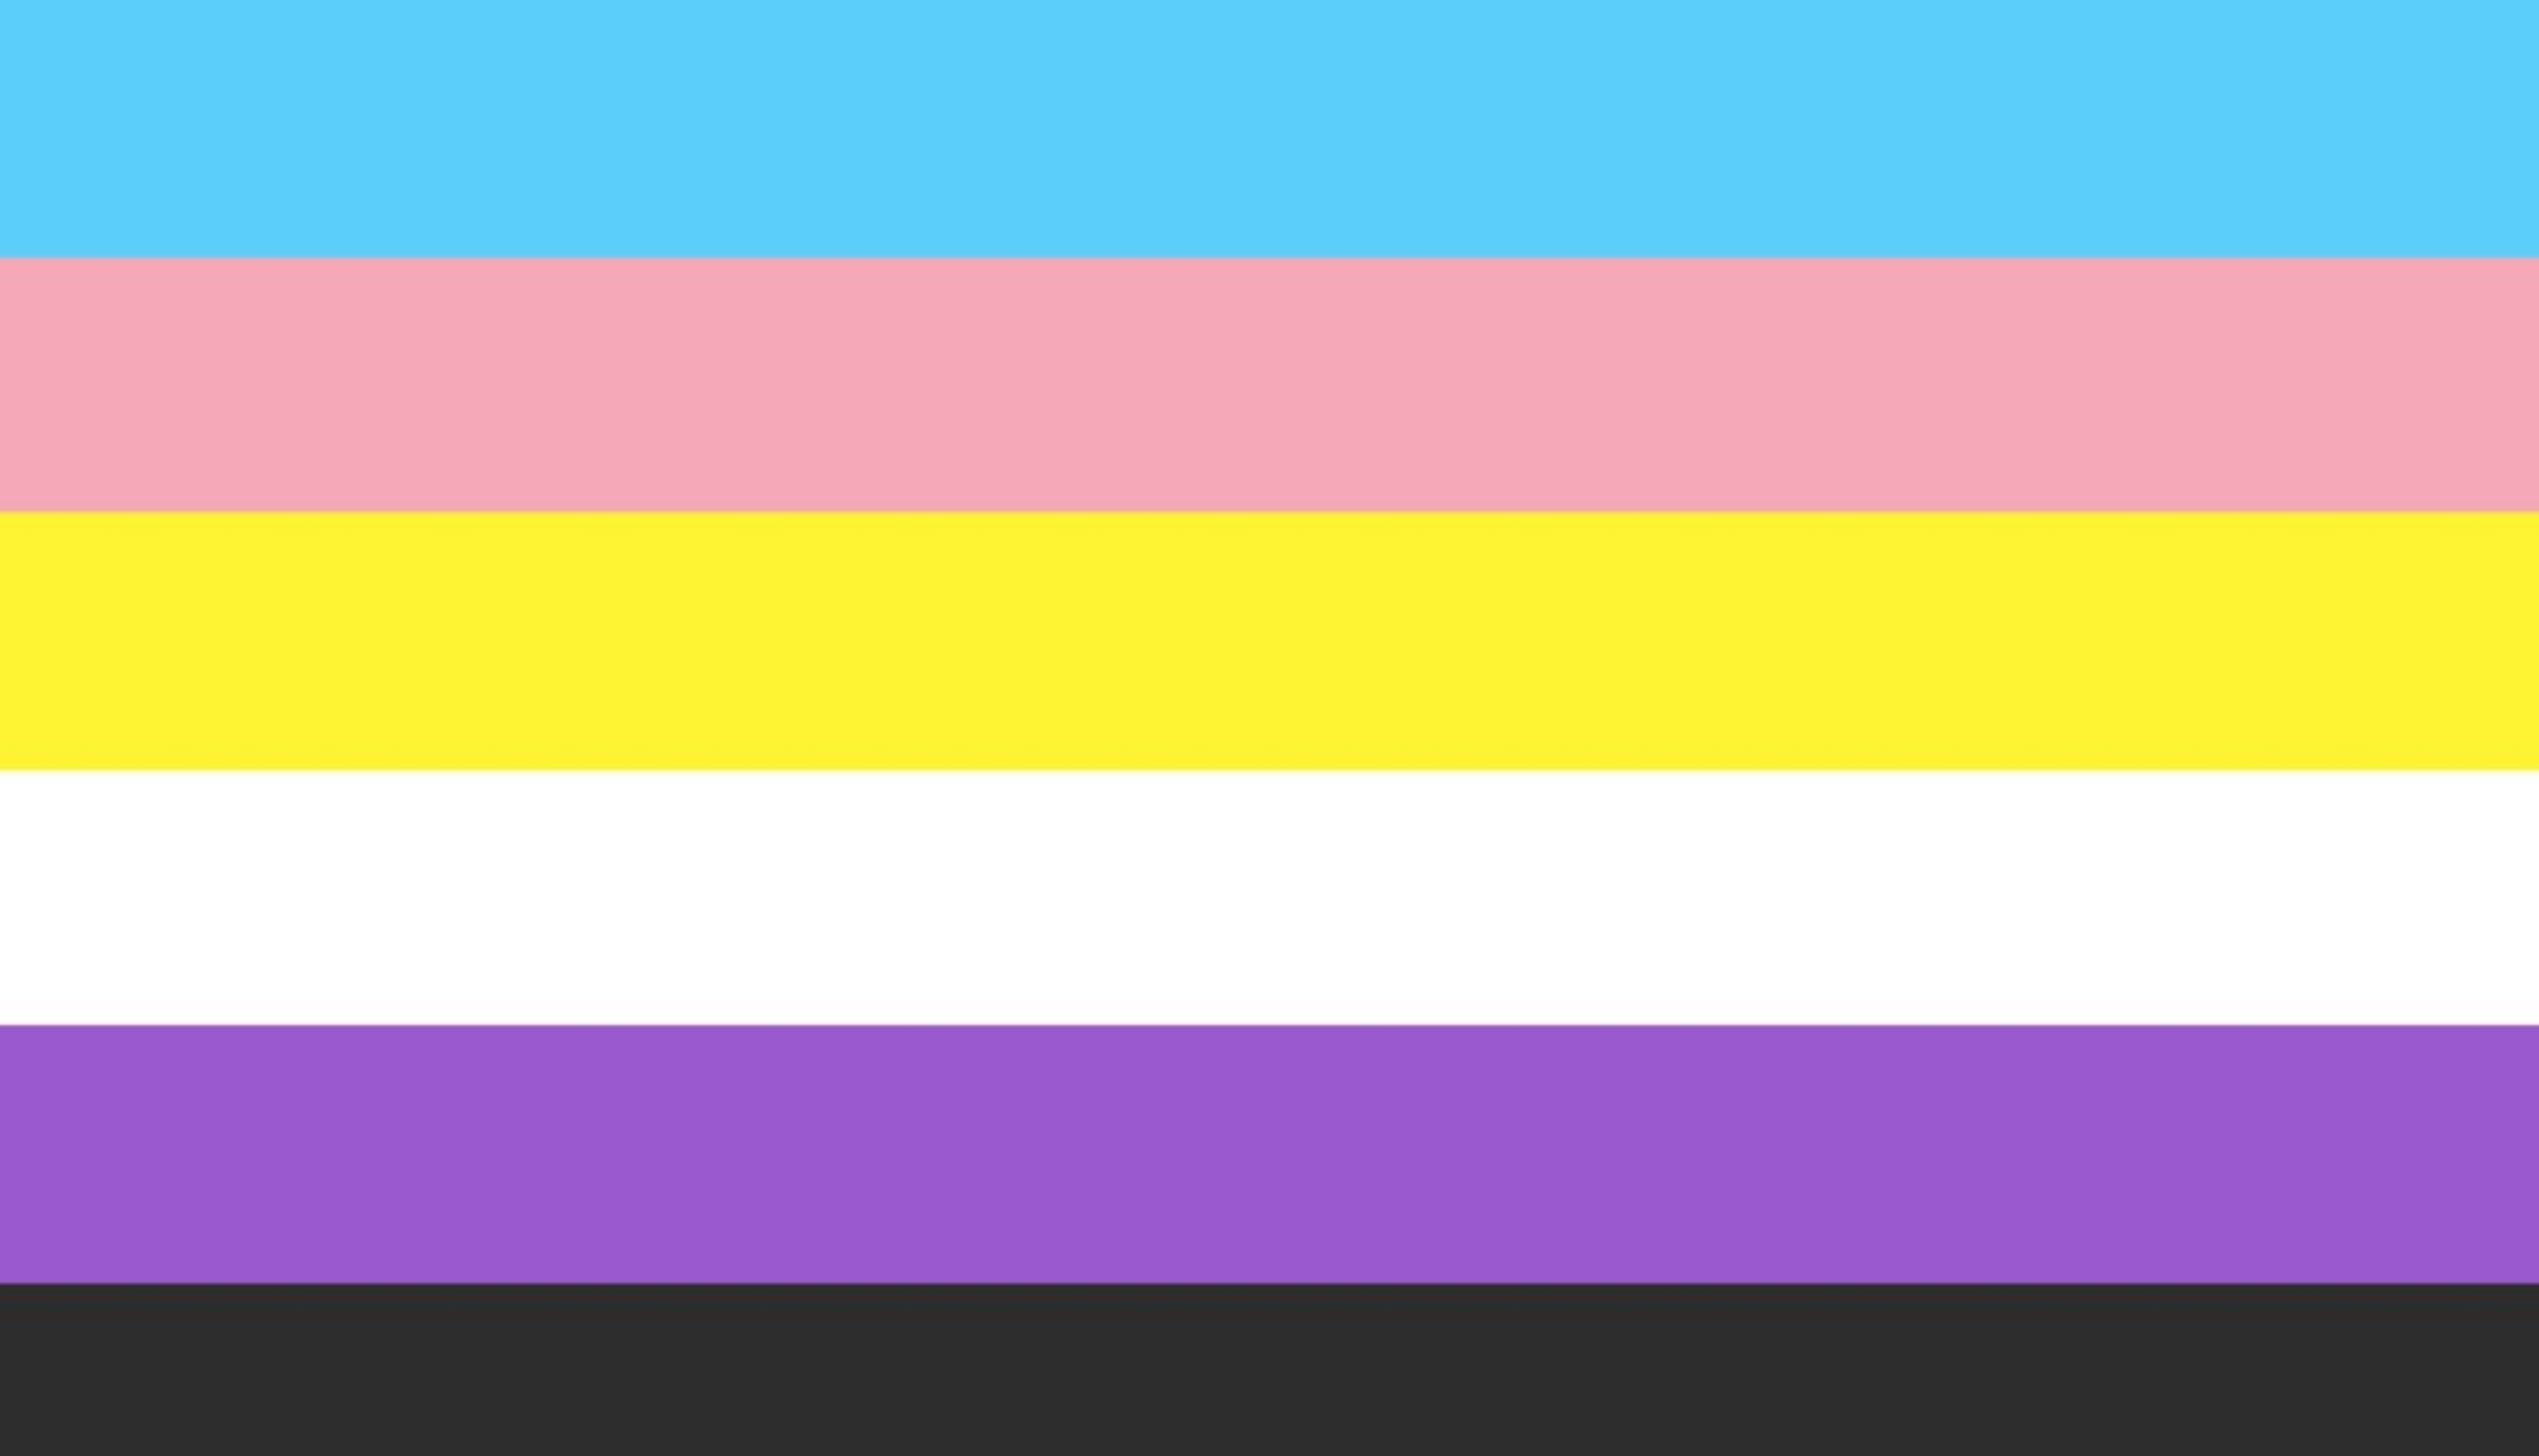 Trans and non-binary flag v2